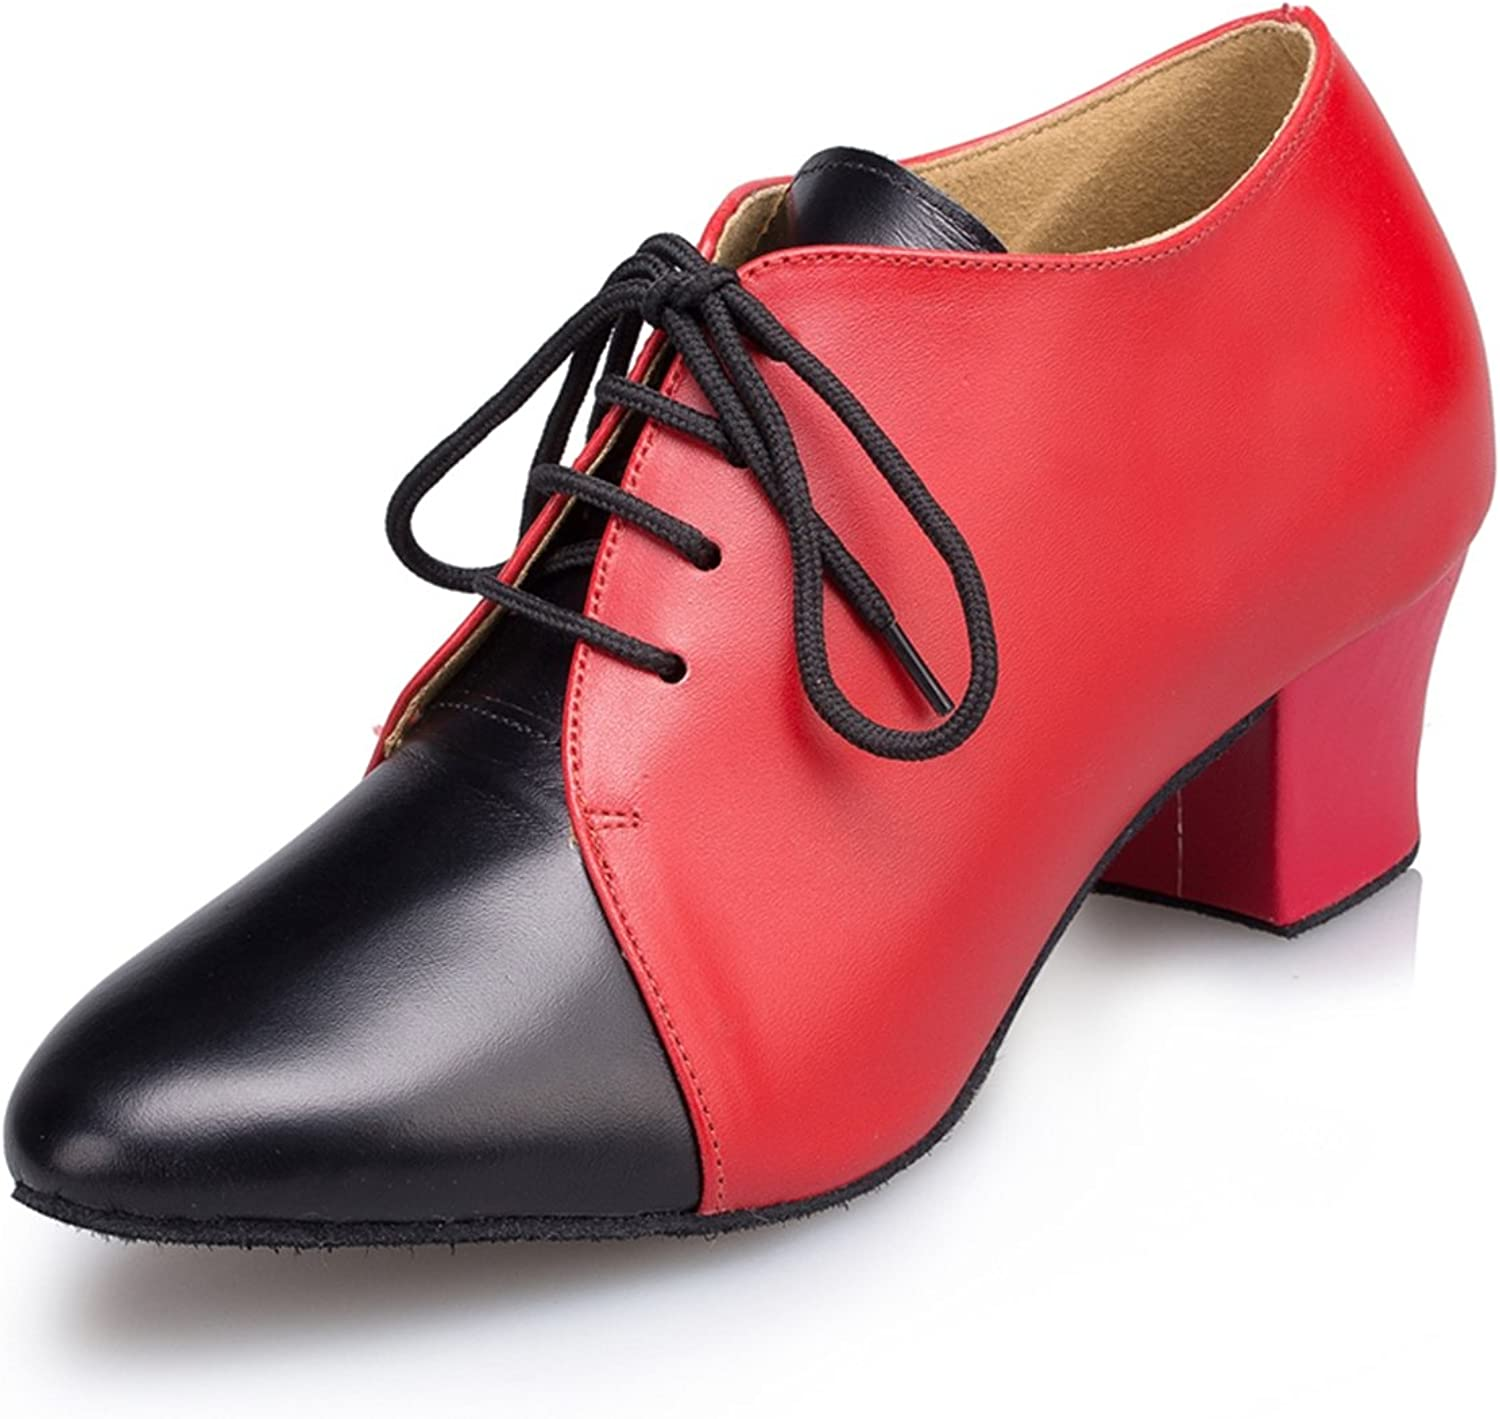 Miyoopark Women's Lace-up Low Heel Leather Latin Ballroom Dance shoes Evening Prom Pumps